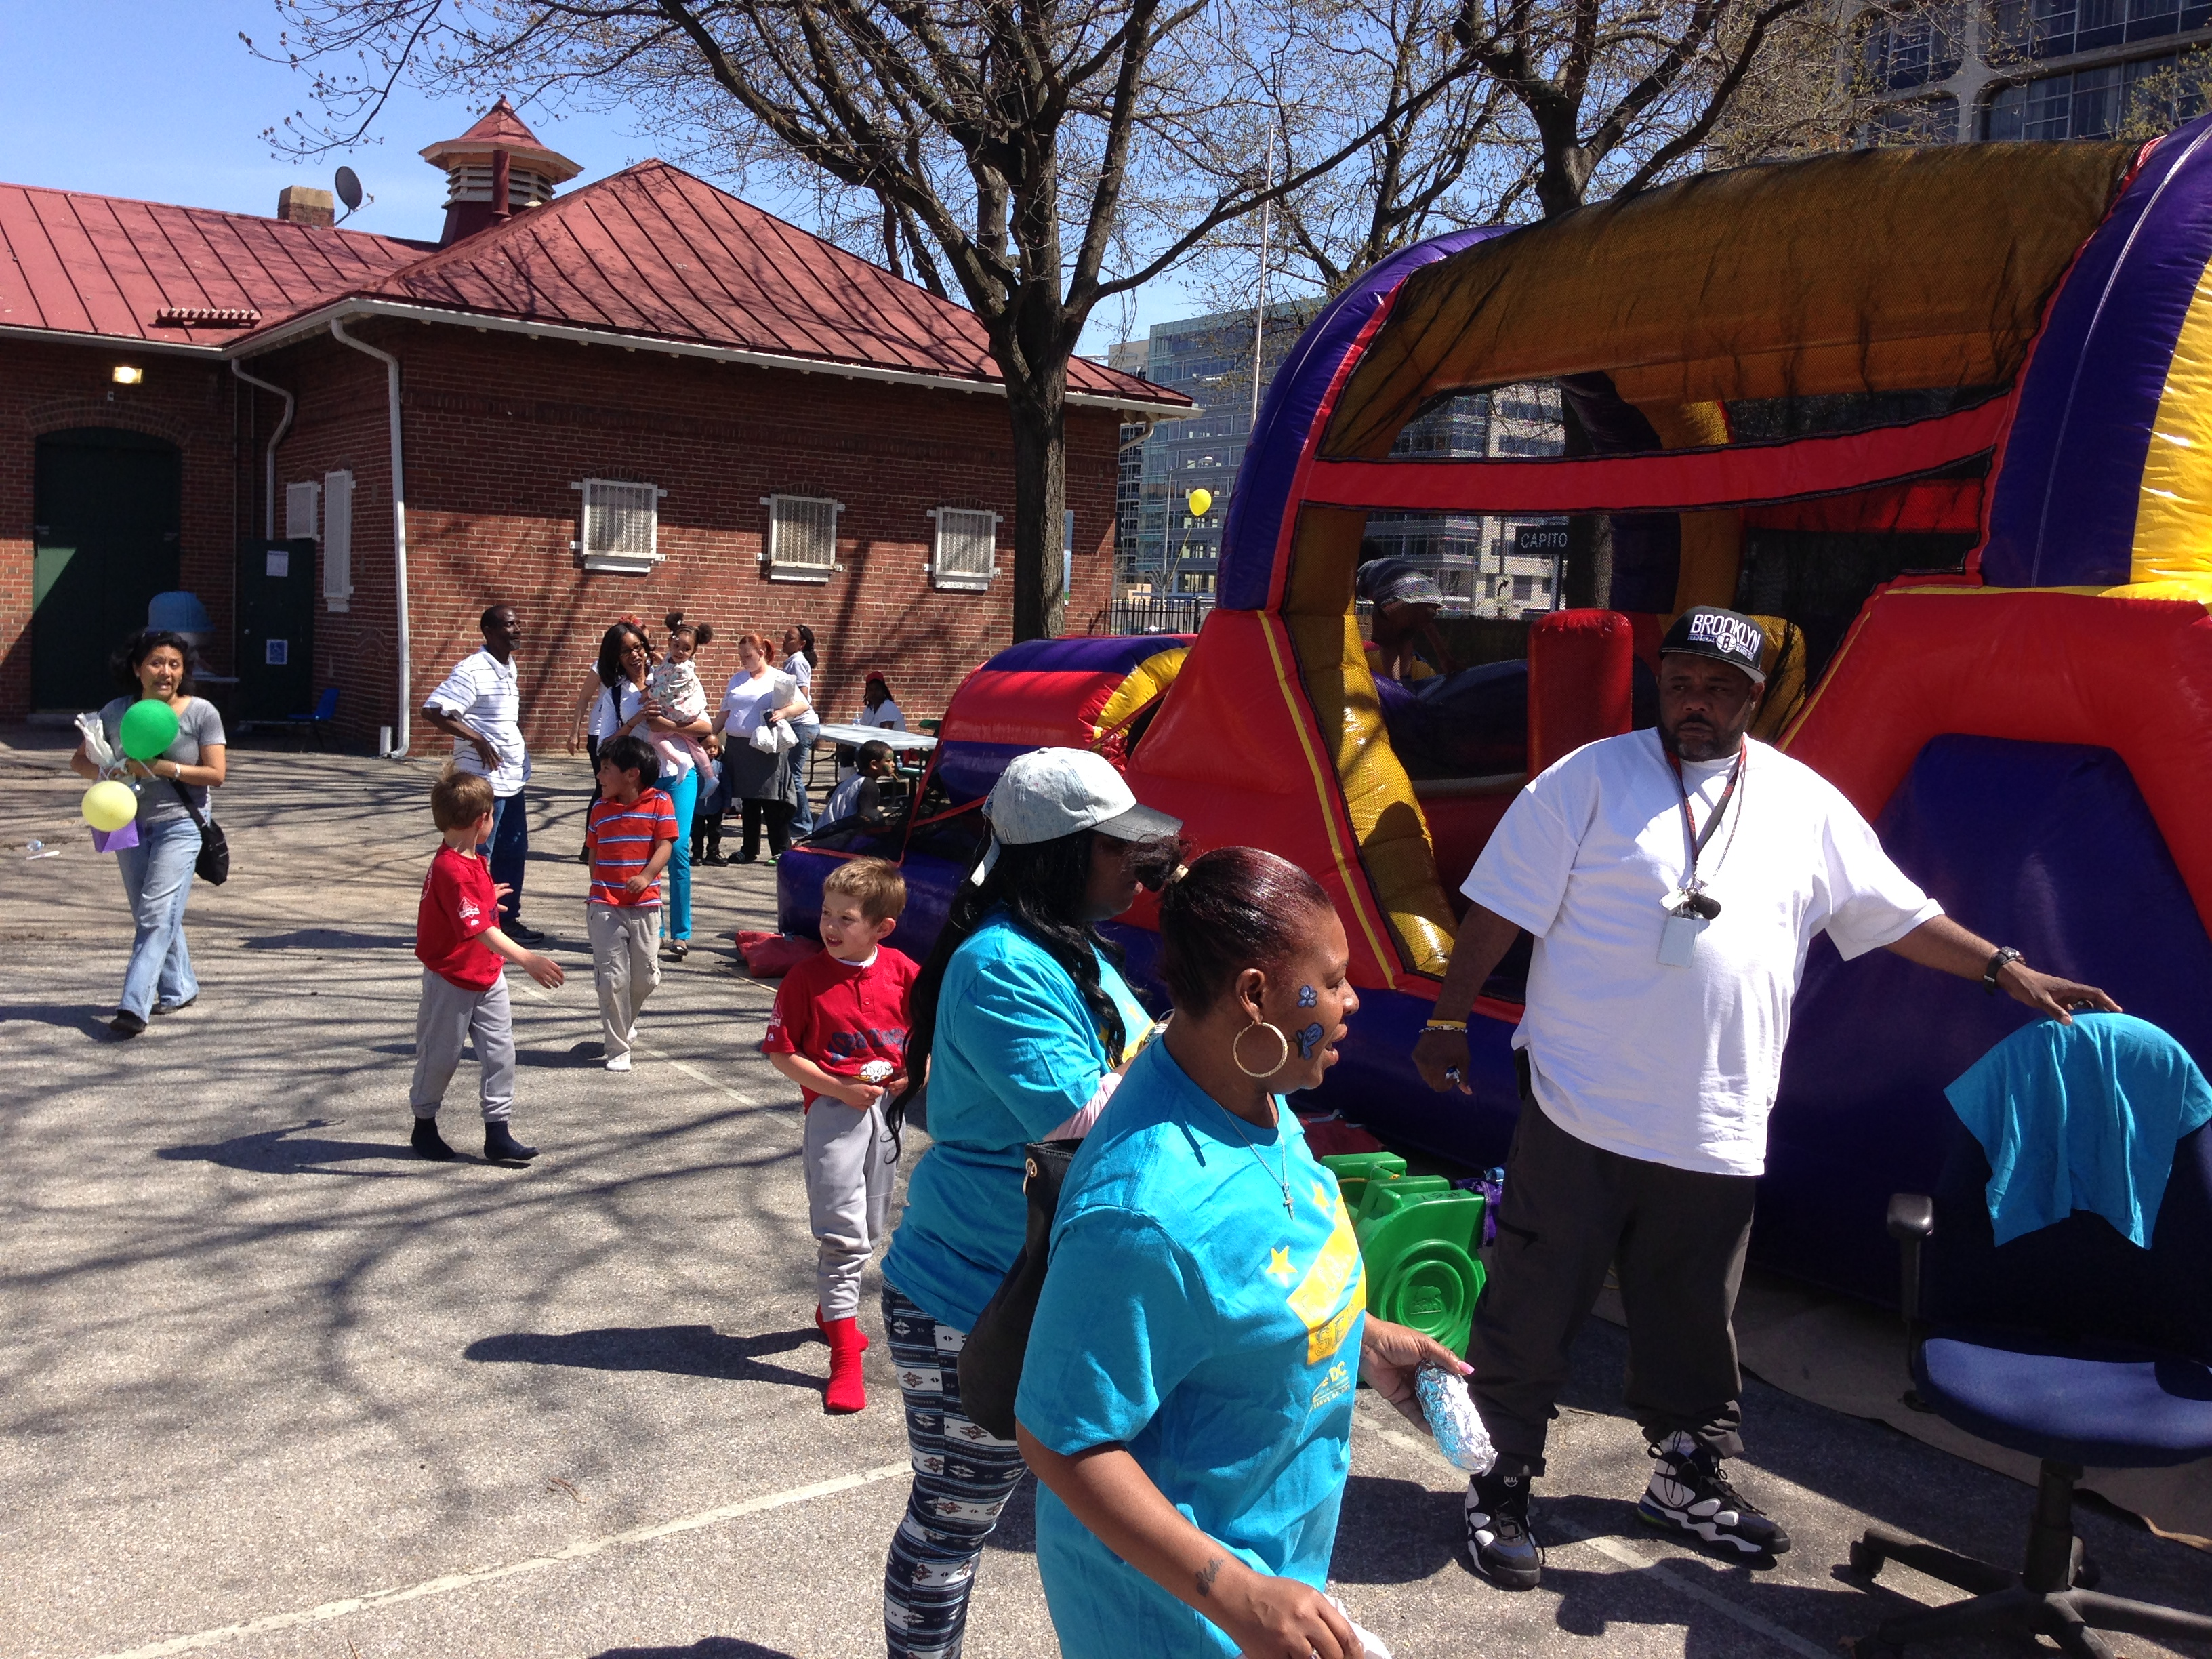 Street Wize Foundation's Safe in the Streetz Outreach Team was at the Sasha Bruce Global Youth Service Day Easter Egg Hunt Event at Randall Rec Center in SW DC.